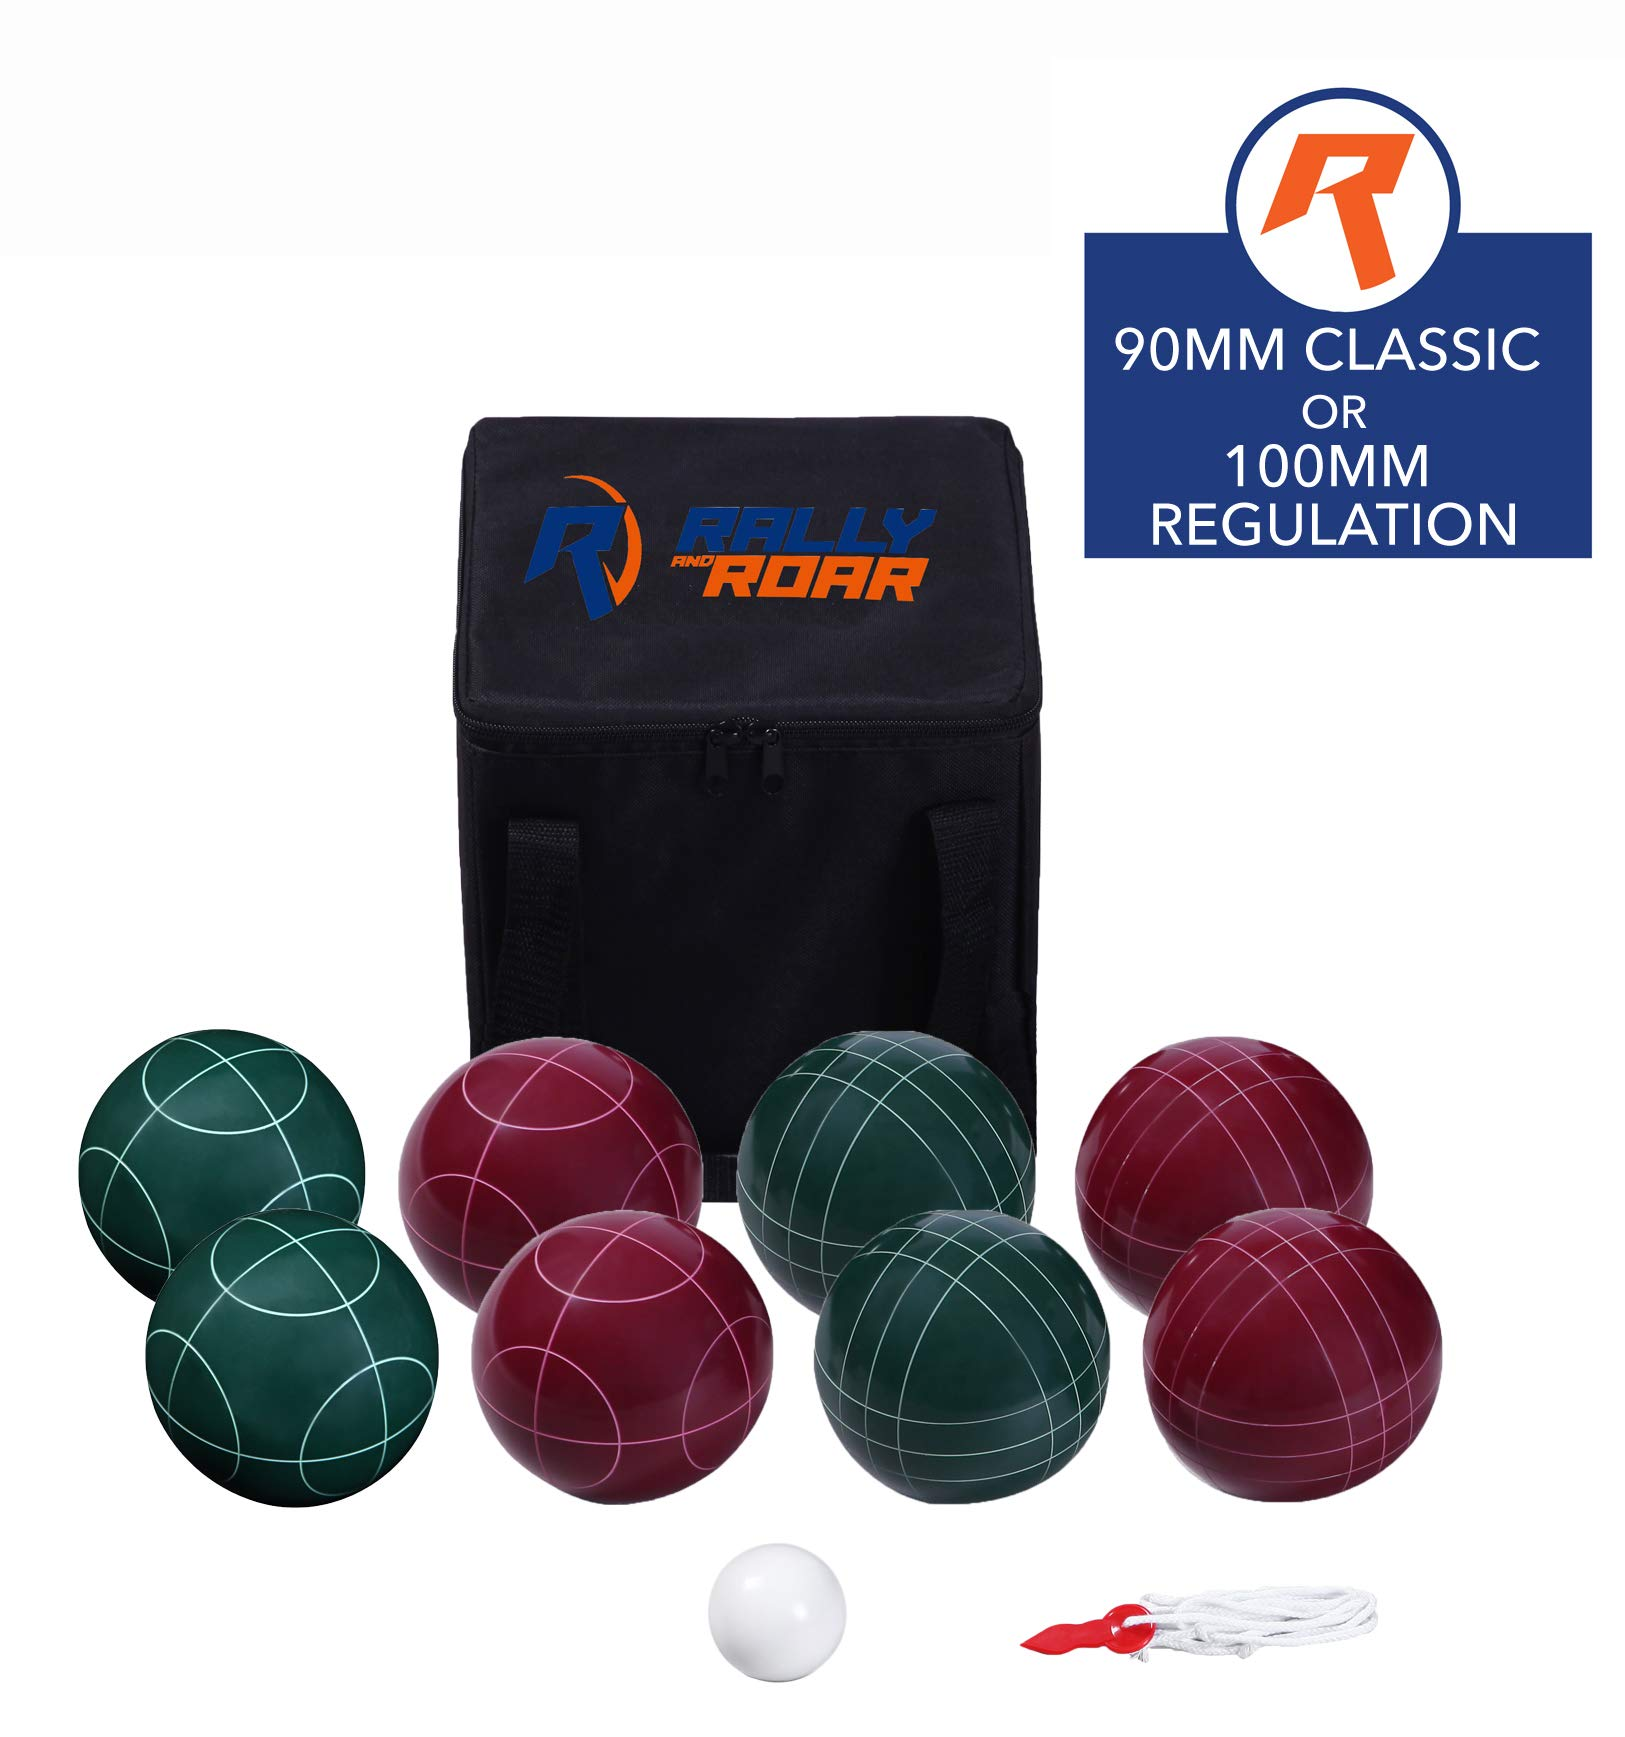 Bocce Ball Game Set for Adults, Families, and Kids - 100 mm - Complete Bocce Yard and Lawn Games with Carrying and Storage Case by Day 1 Sports and Rally & Roar - Fun Outdoor, Backyard, Beach Game